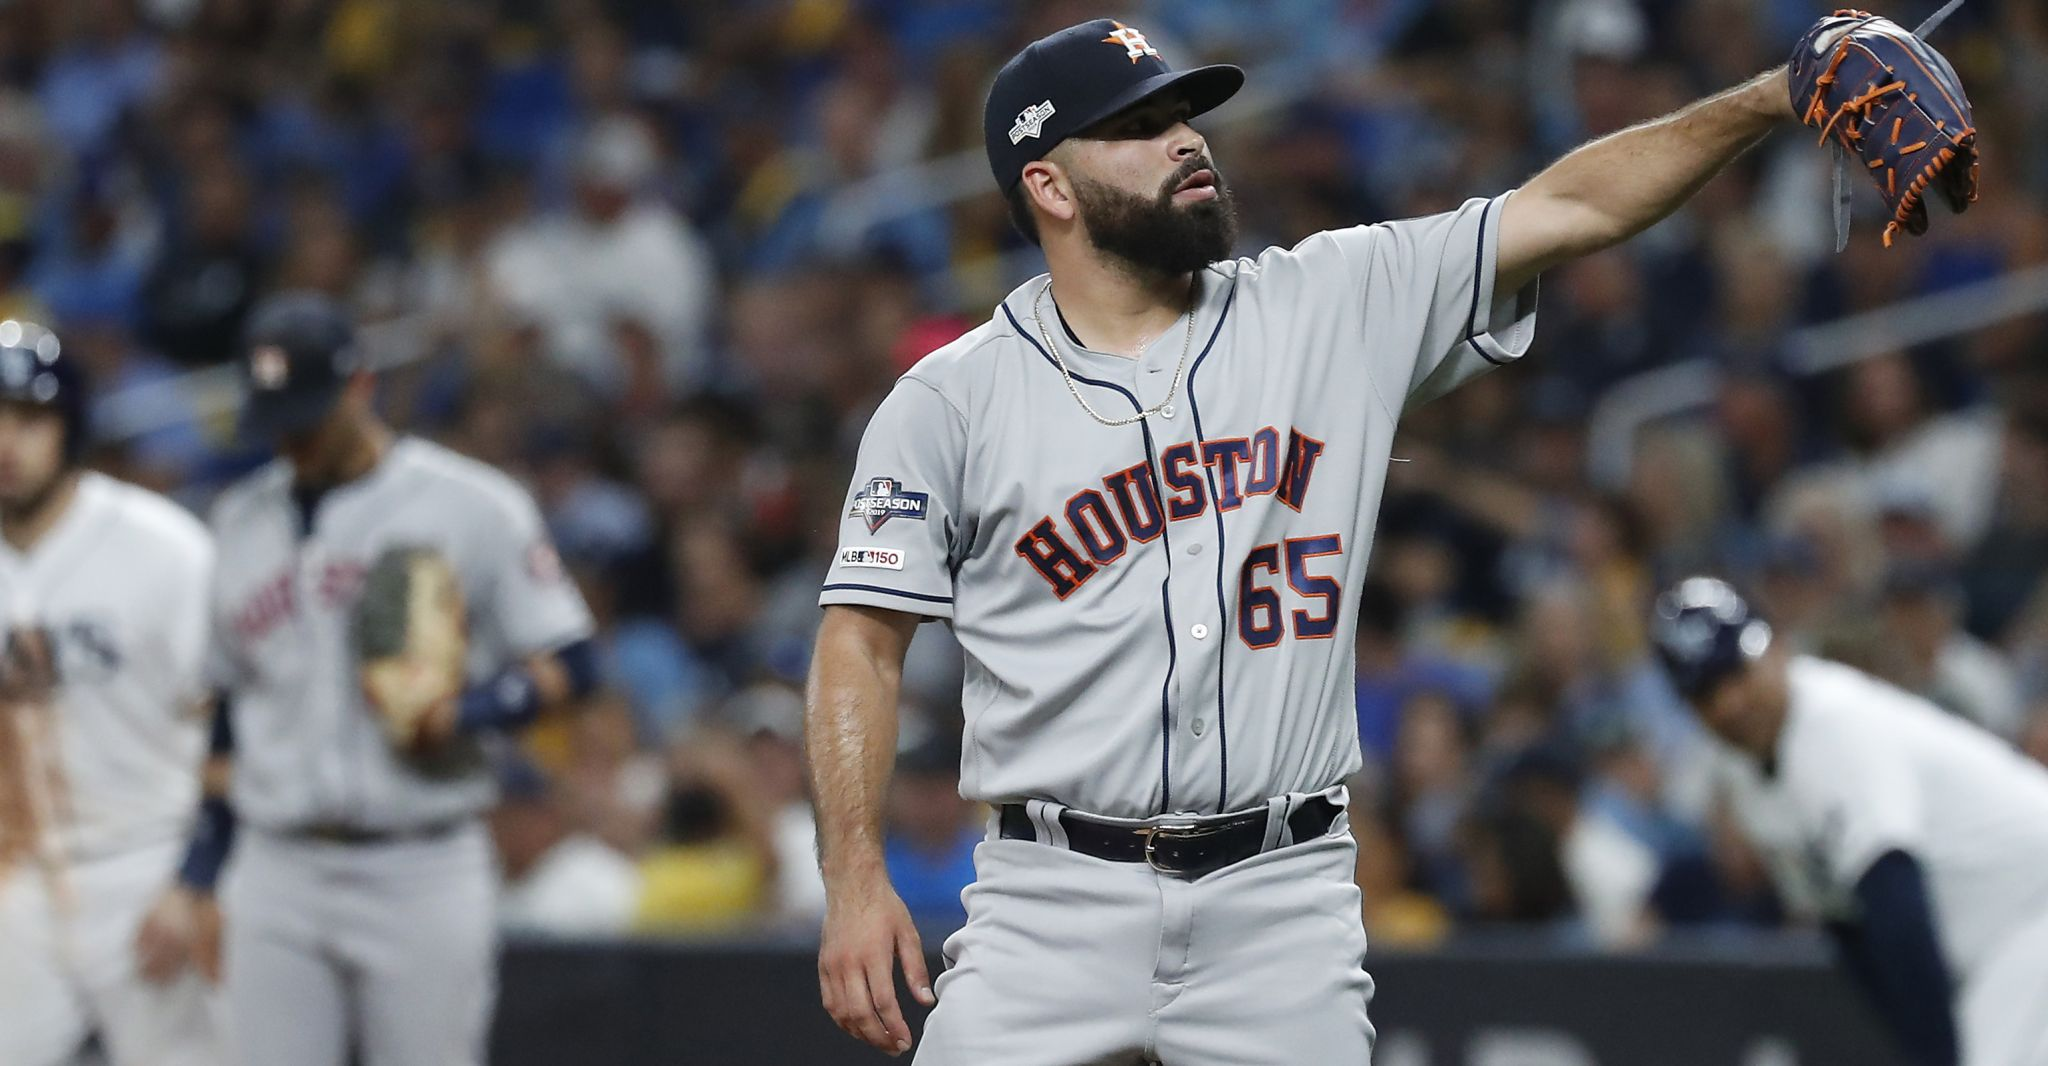 ALCS Game 4 shapes up as bullpen game for Astros, weather permitting